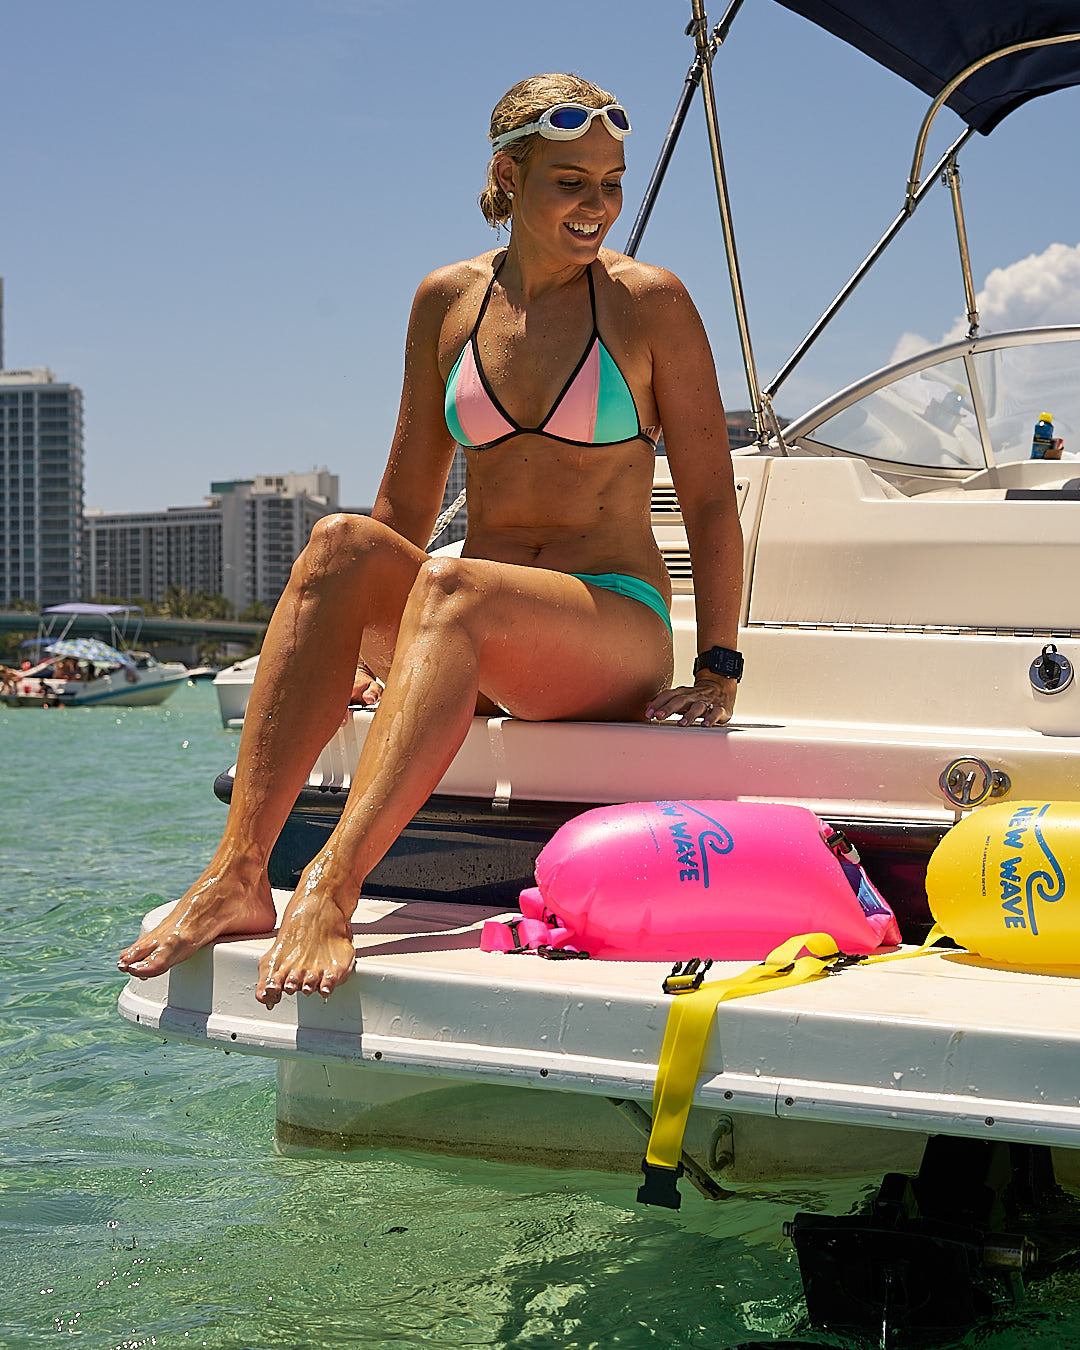 Jess Wilson on a Boat in Miami